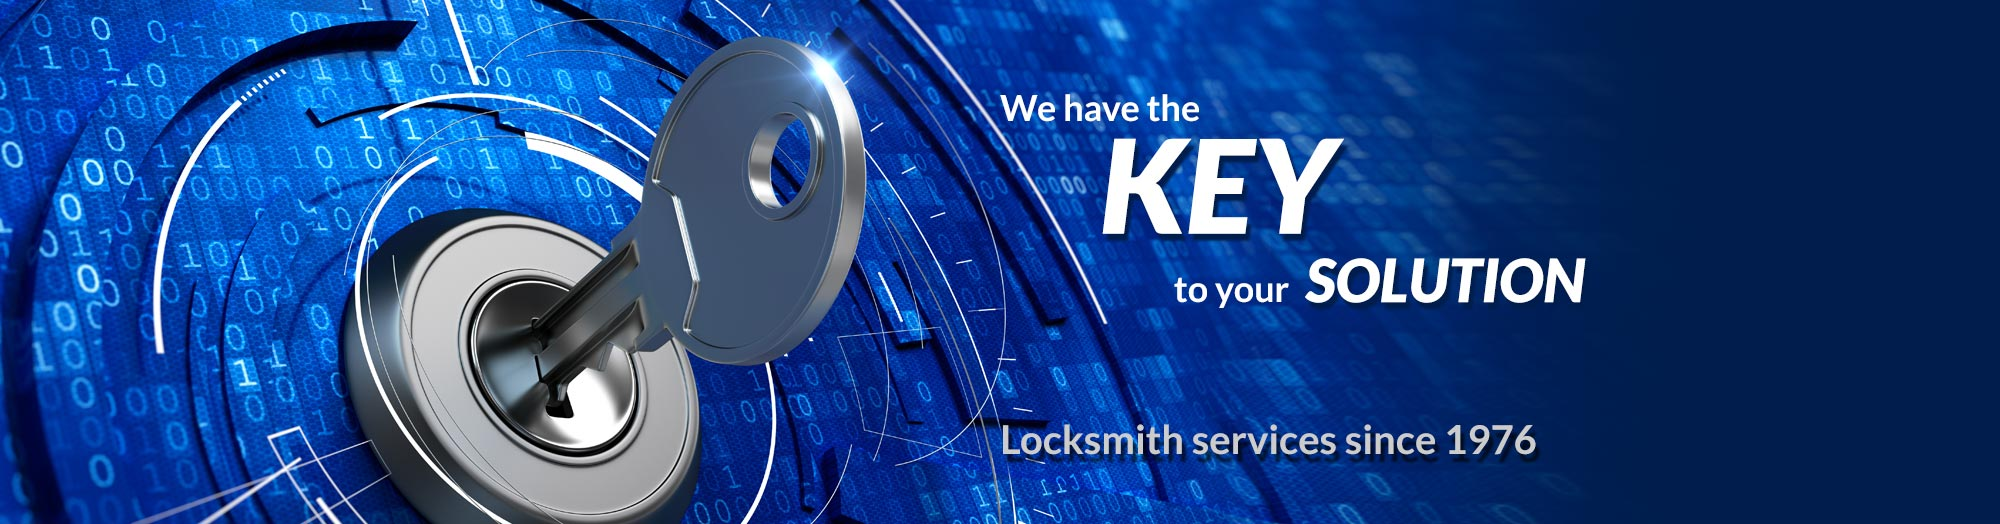 We have the KEY to your SOLUTION. Locksmith services since 1976.